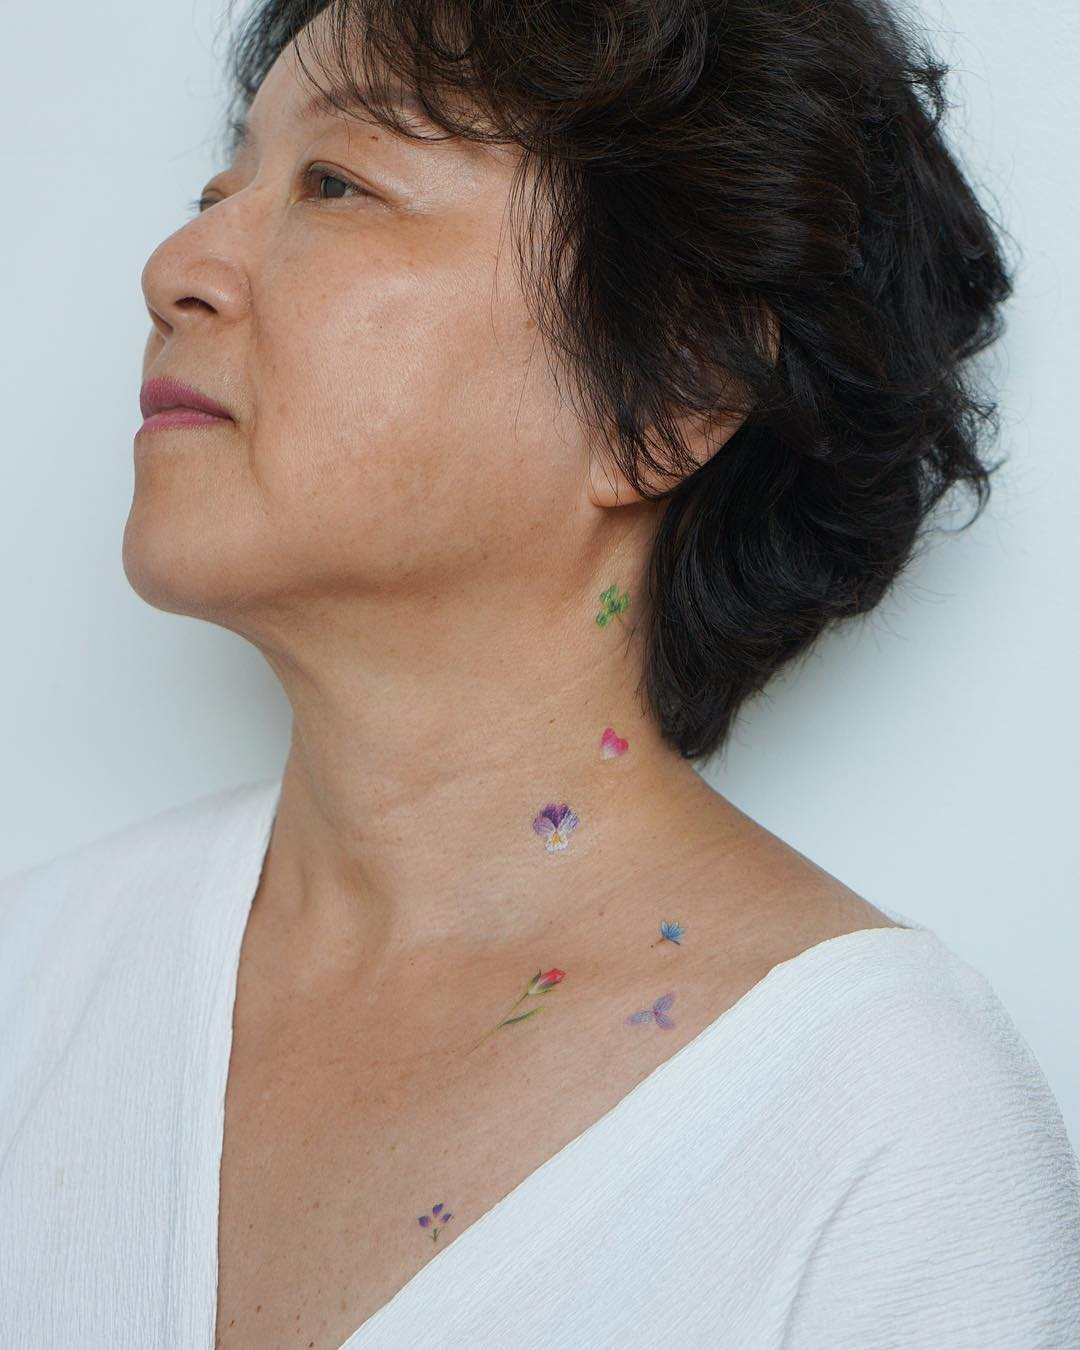 Girl with a tattoo of a few flowers on her neck